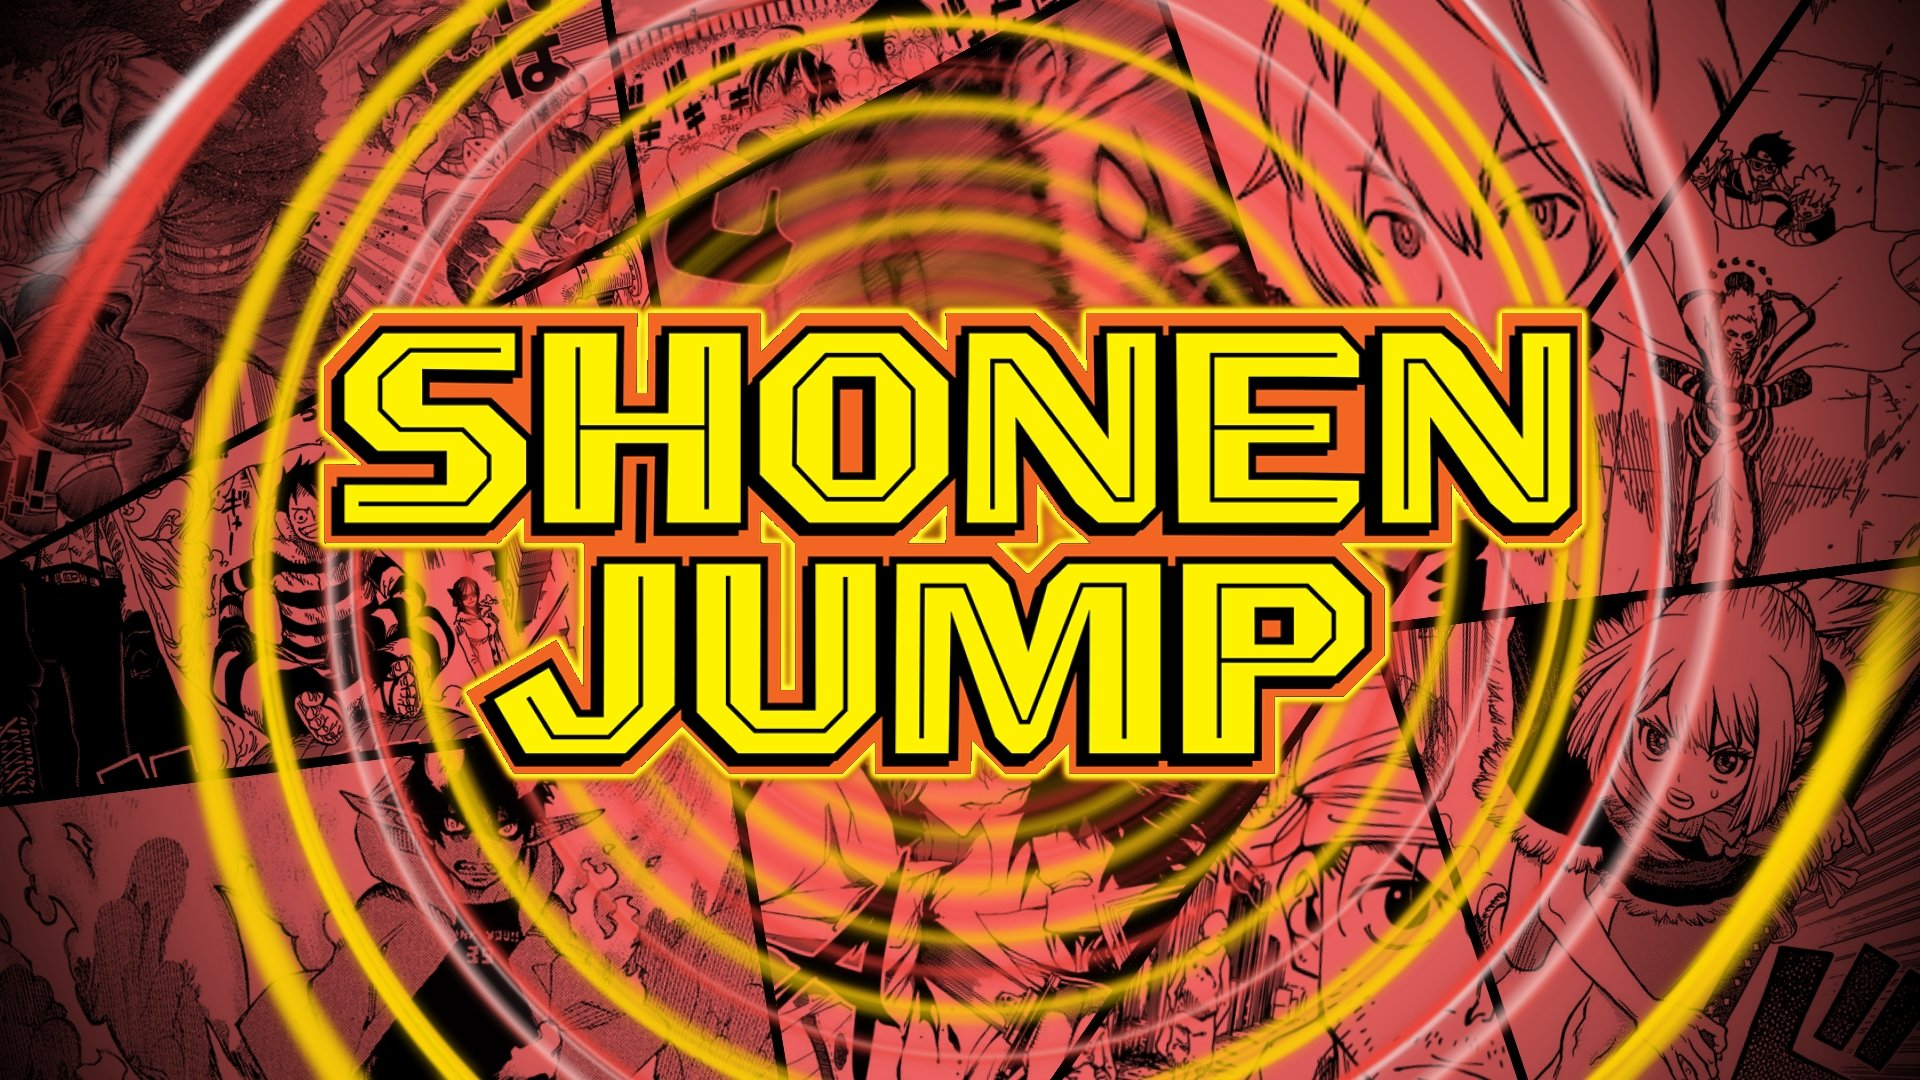 The New English Shonen Jump and The Promises It Brings